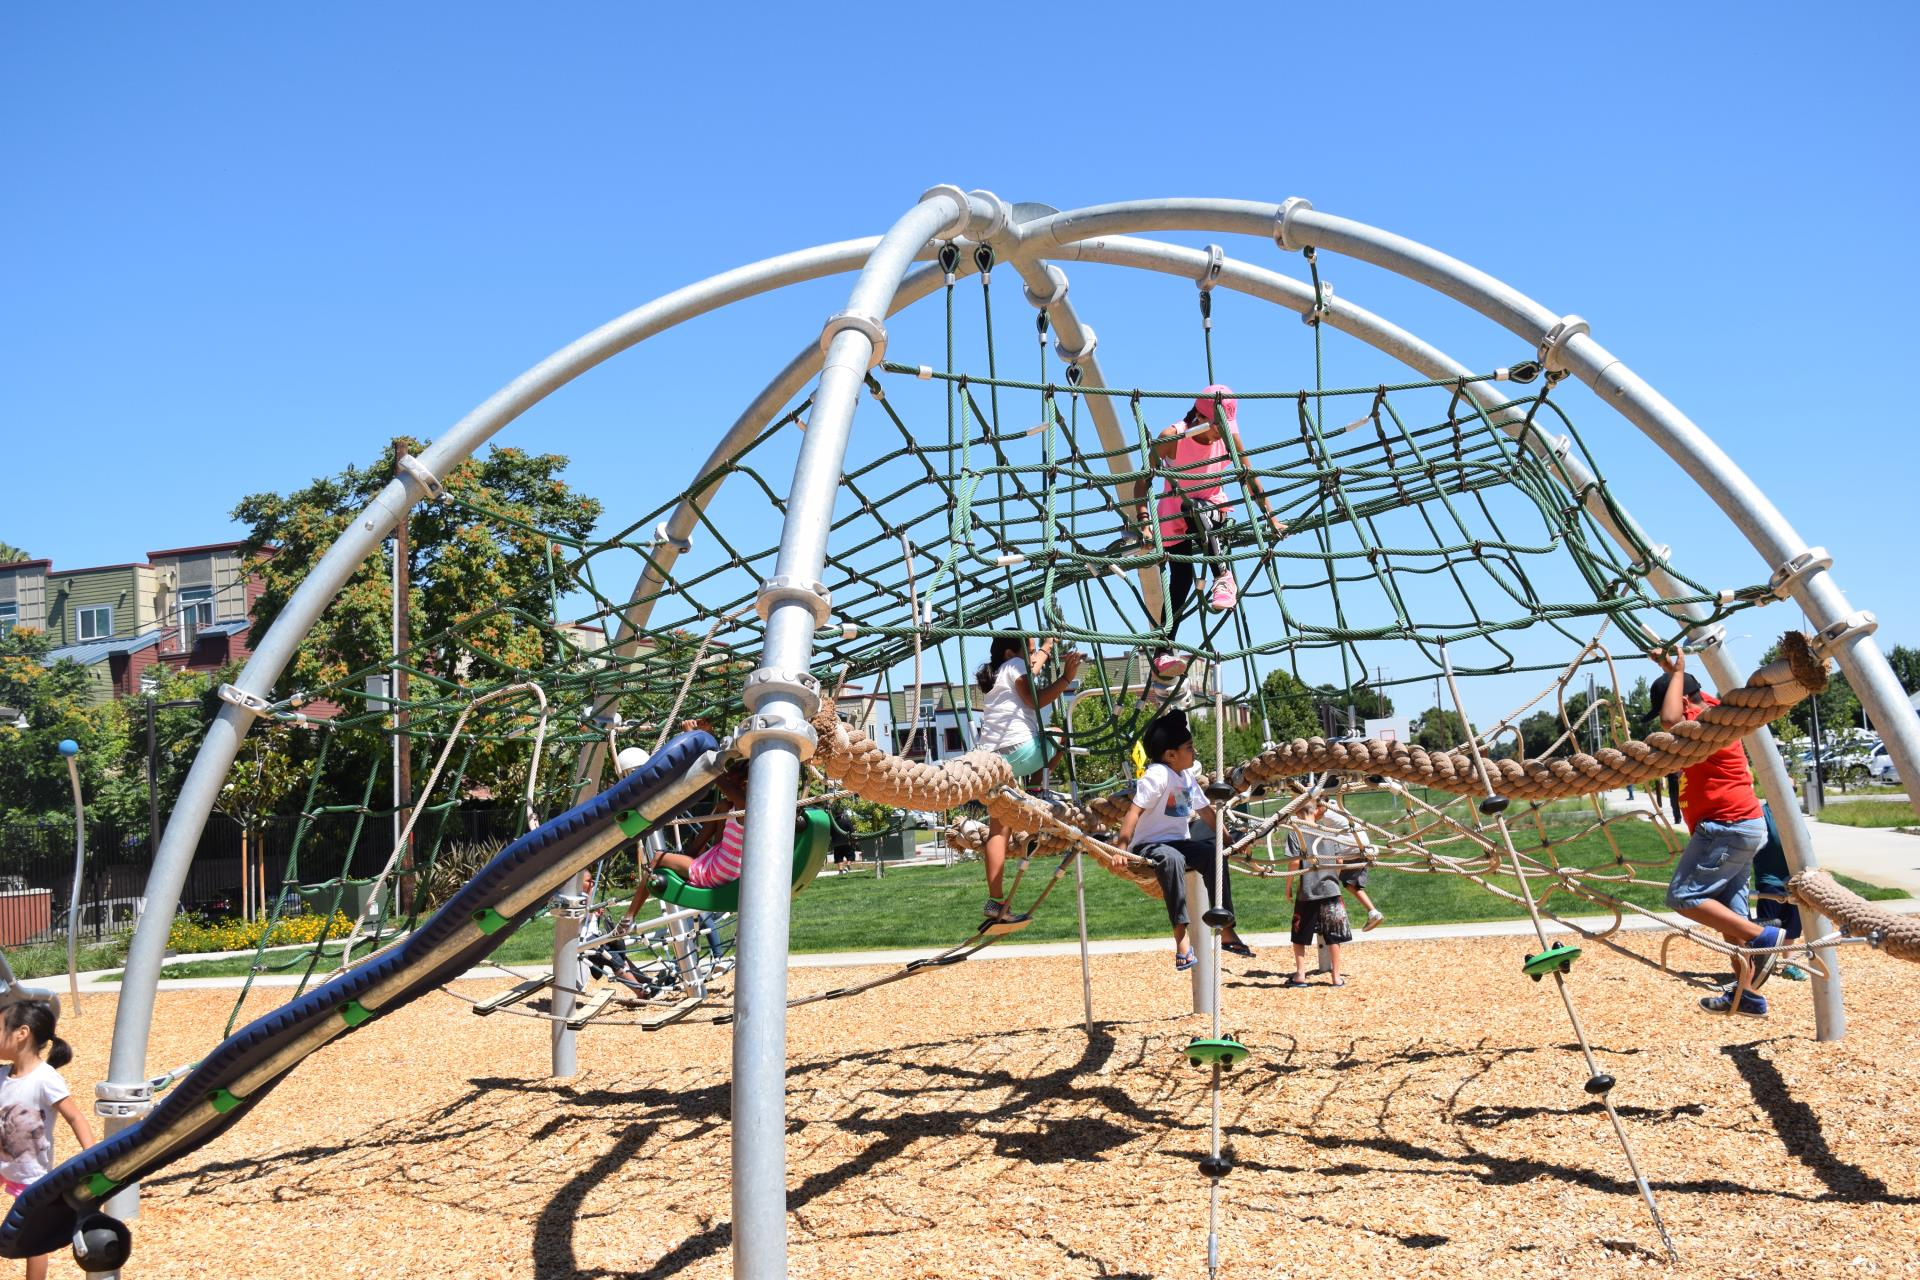 Children playing closely on a jungle gym